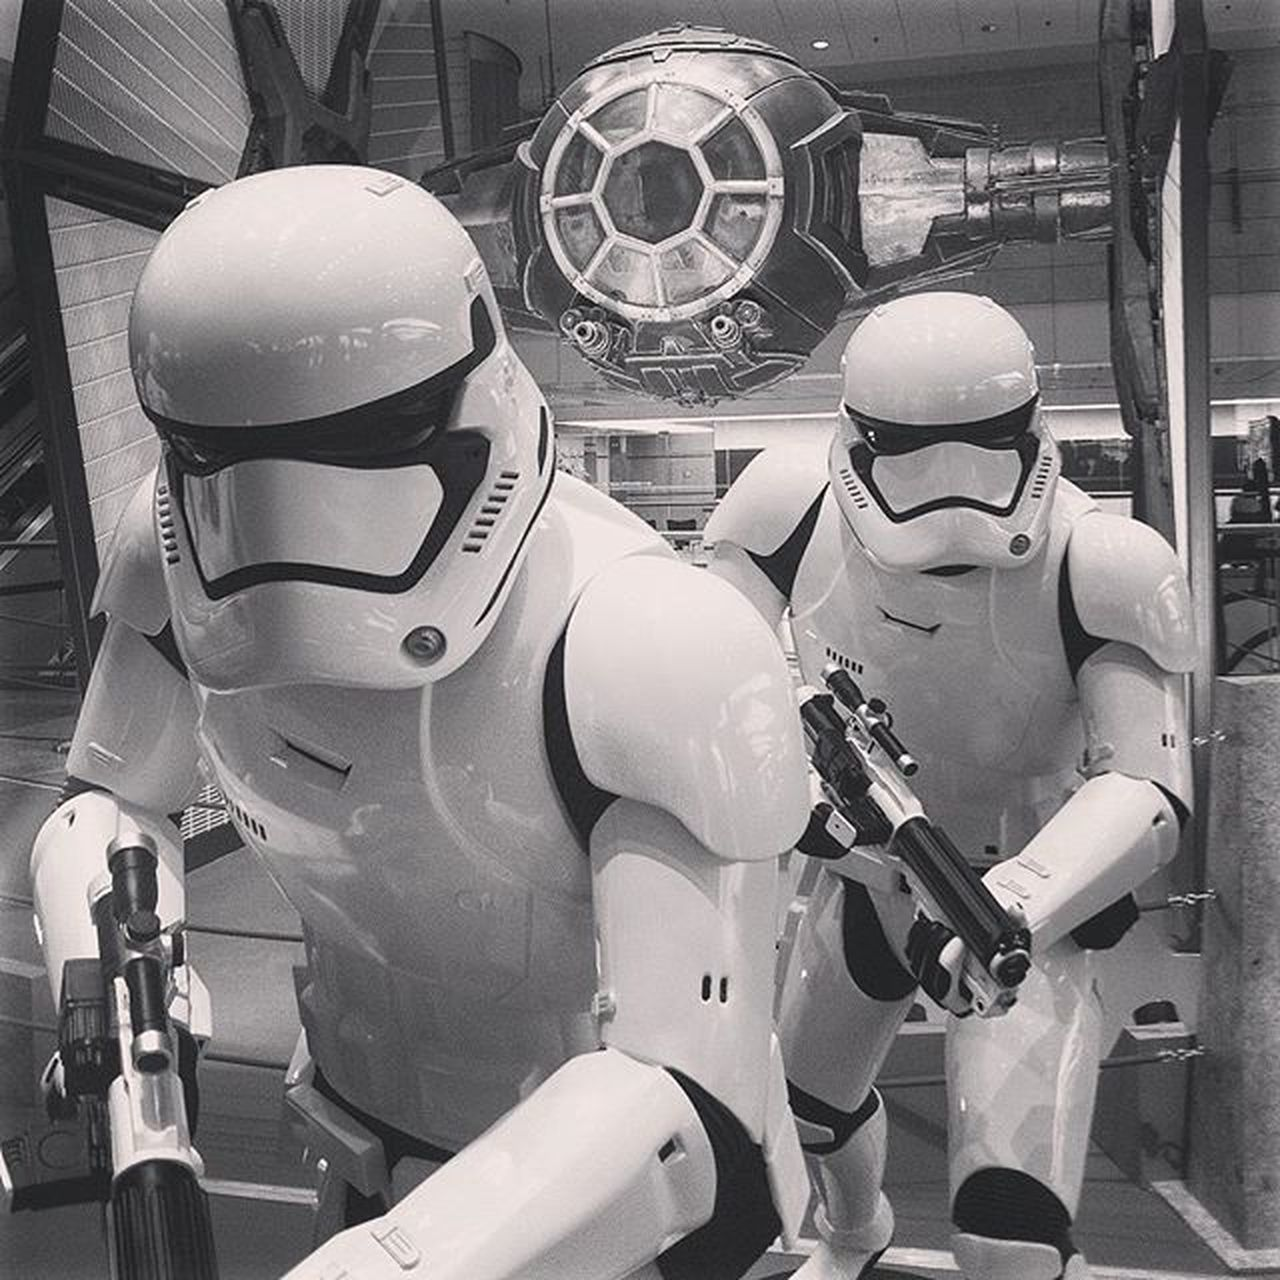 Tie fighter Starwars Galaxy Darkside Empire Stormtroopers Hollywood Film MOVIE Scifi Singapore Changiairport Exhibition Model Instatravelling Instaphoto Instagram Travel Wunderlust Black White Costume